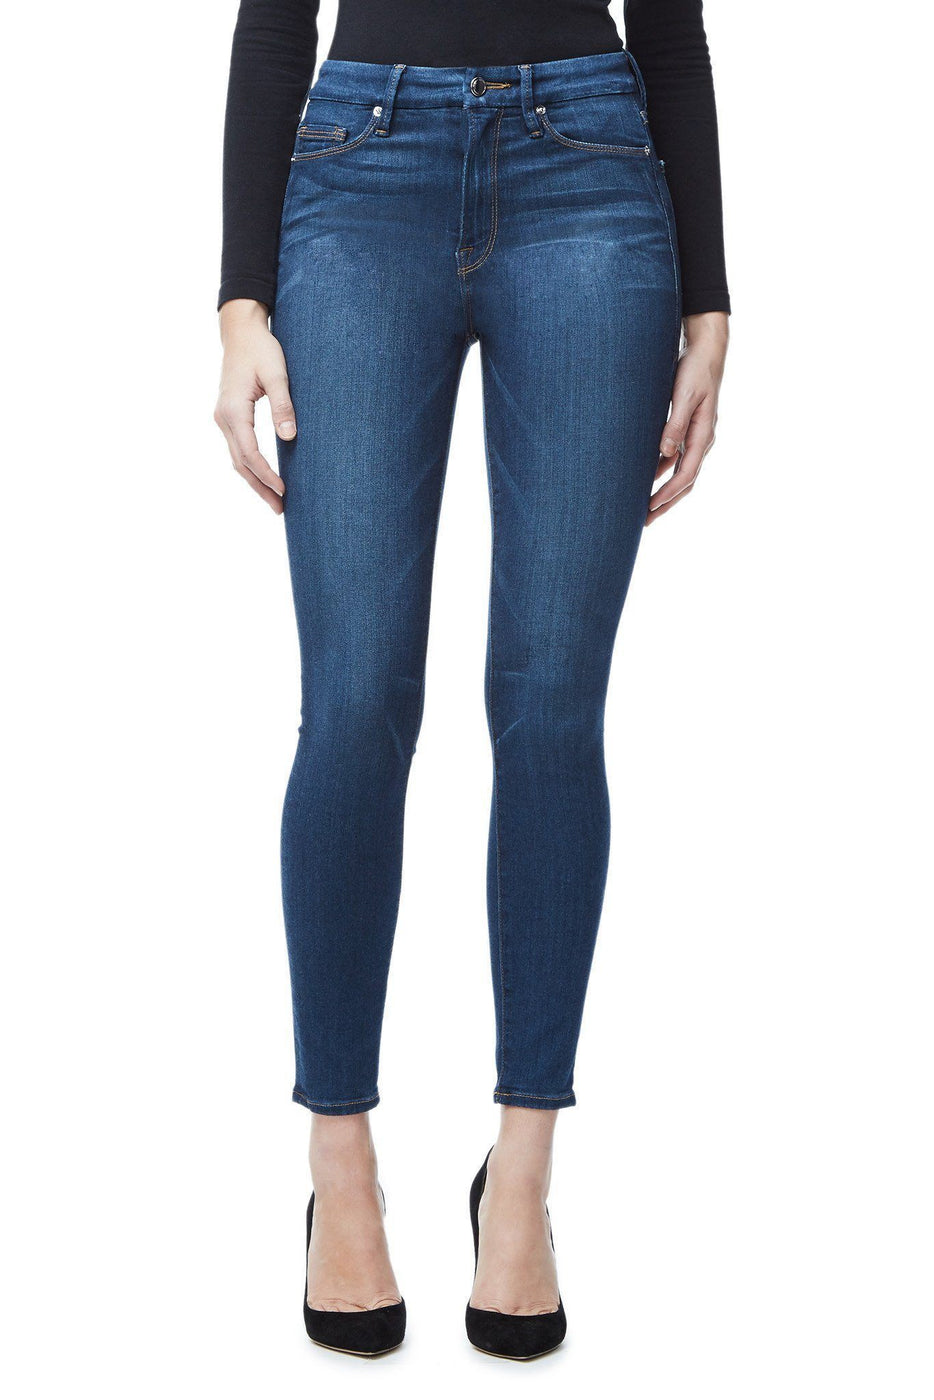 Good American Super High Waisted Blue013 Jeans